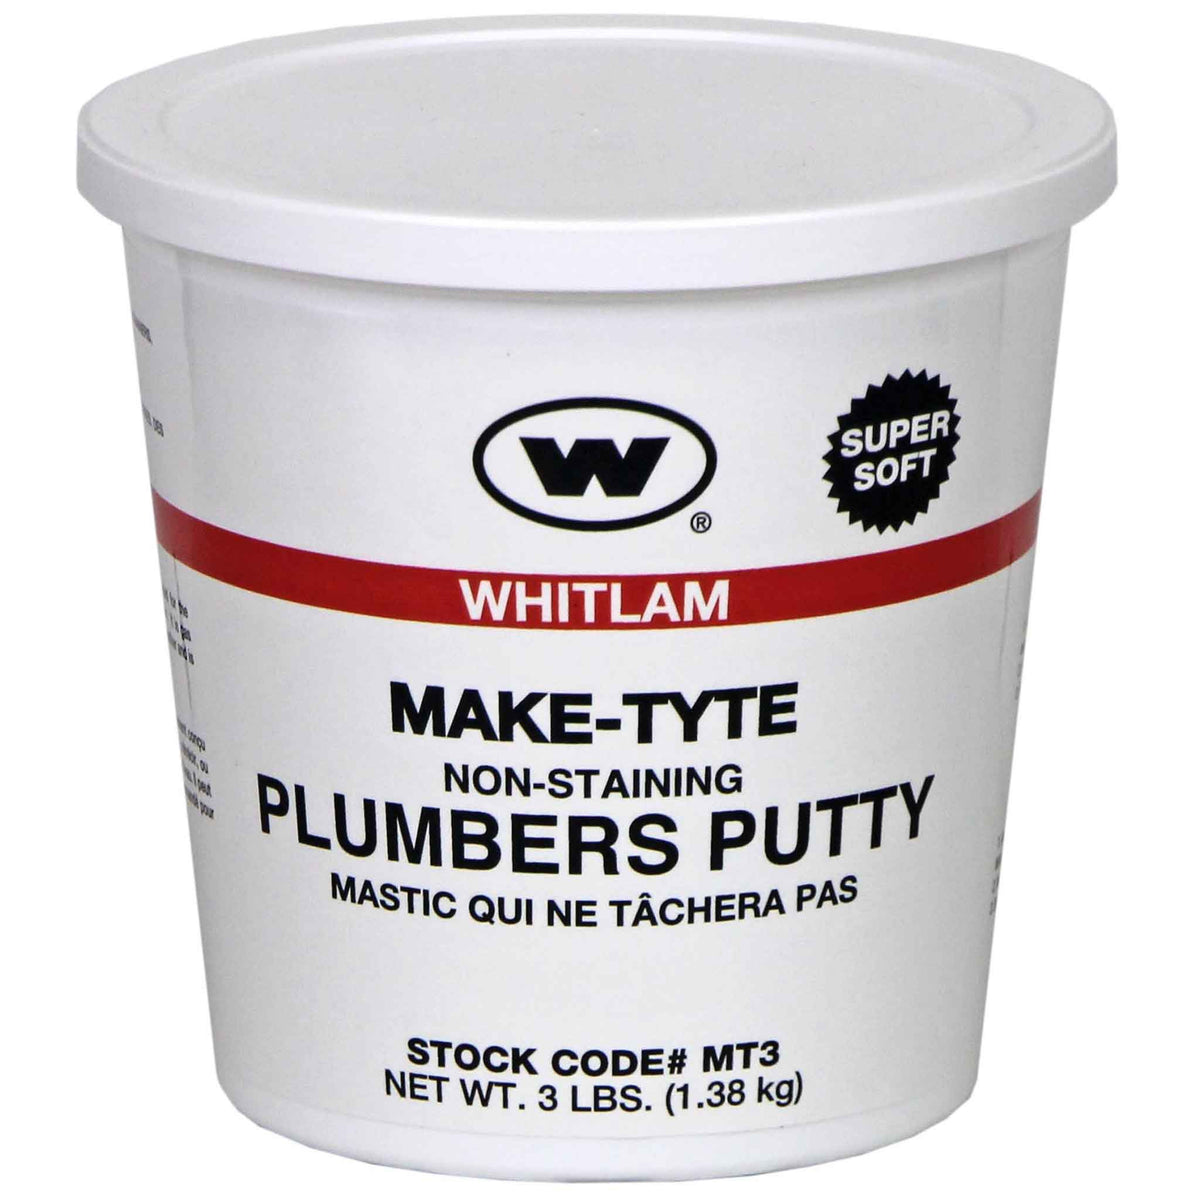 """MAKE-TYTE"" STAINLESS PLUMBER'S PUTTY"